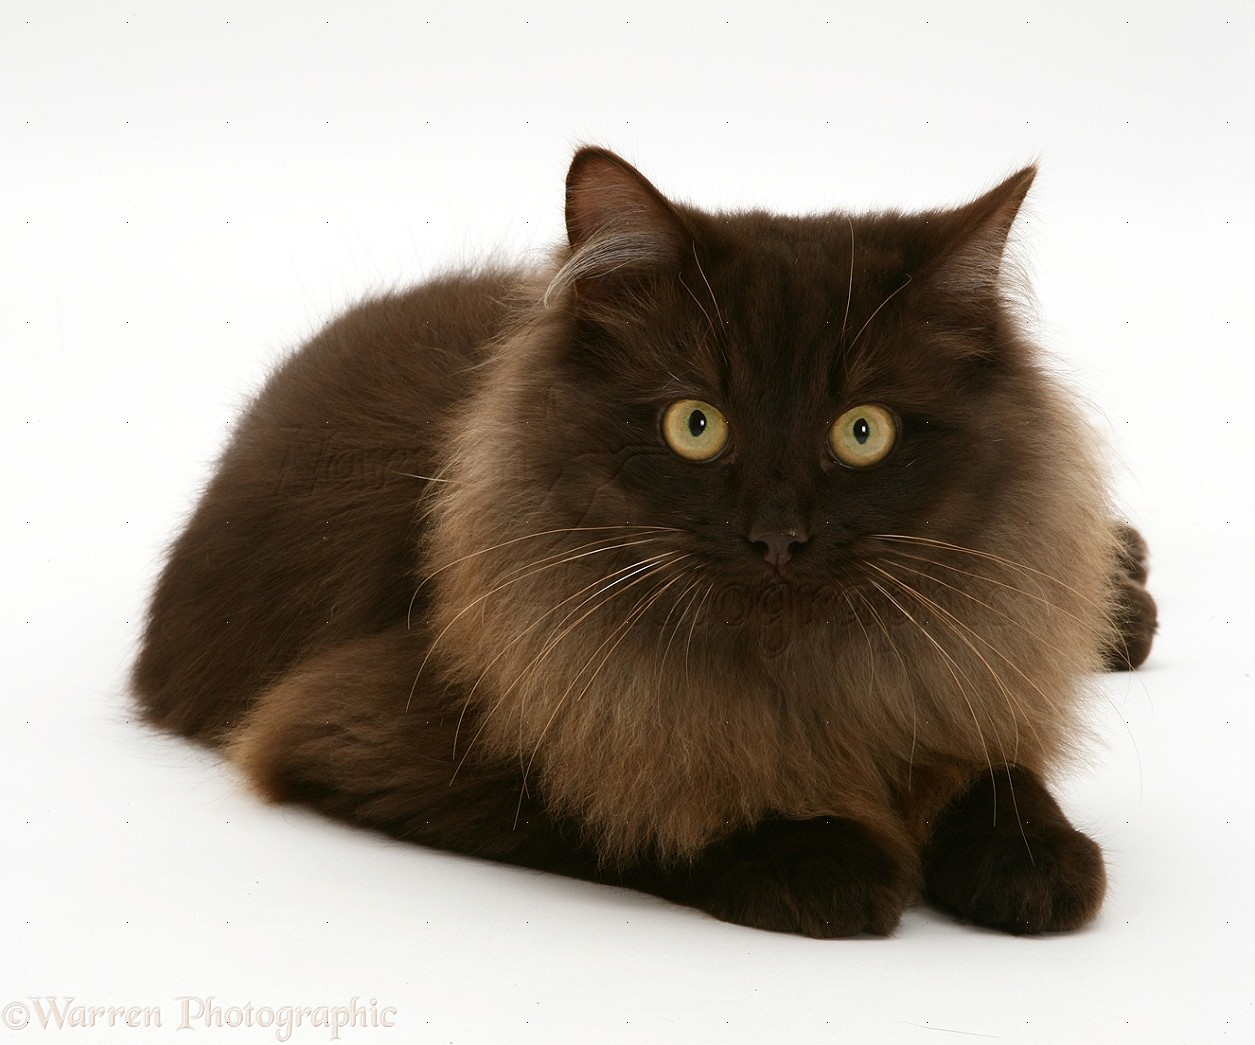 Fluffy dark chocolate Birman-cross cat photo - WP13512